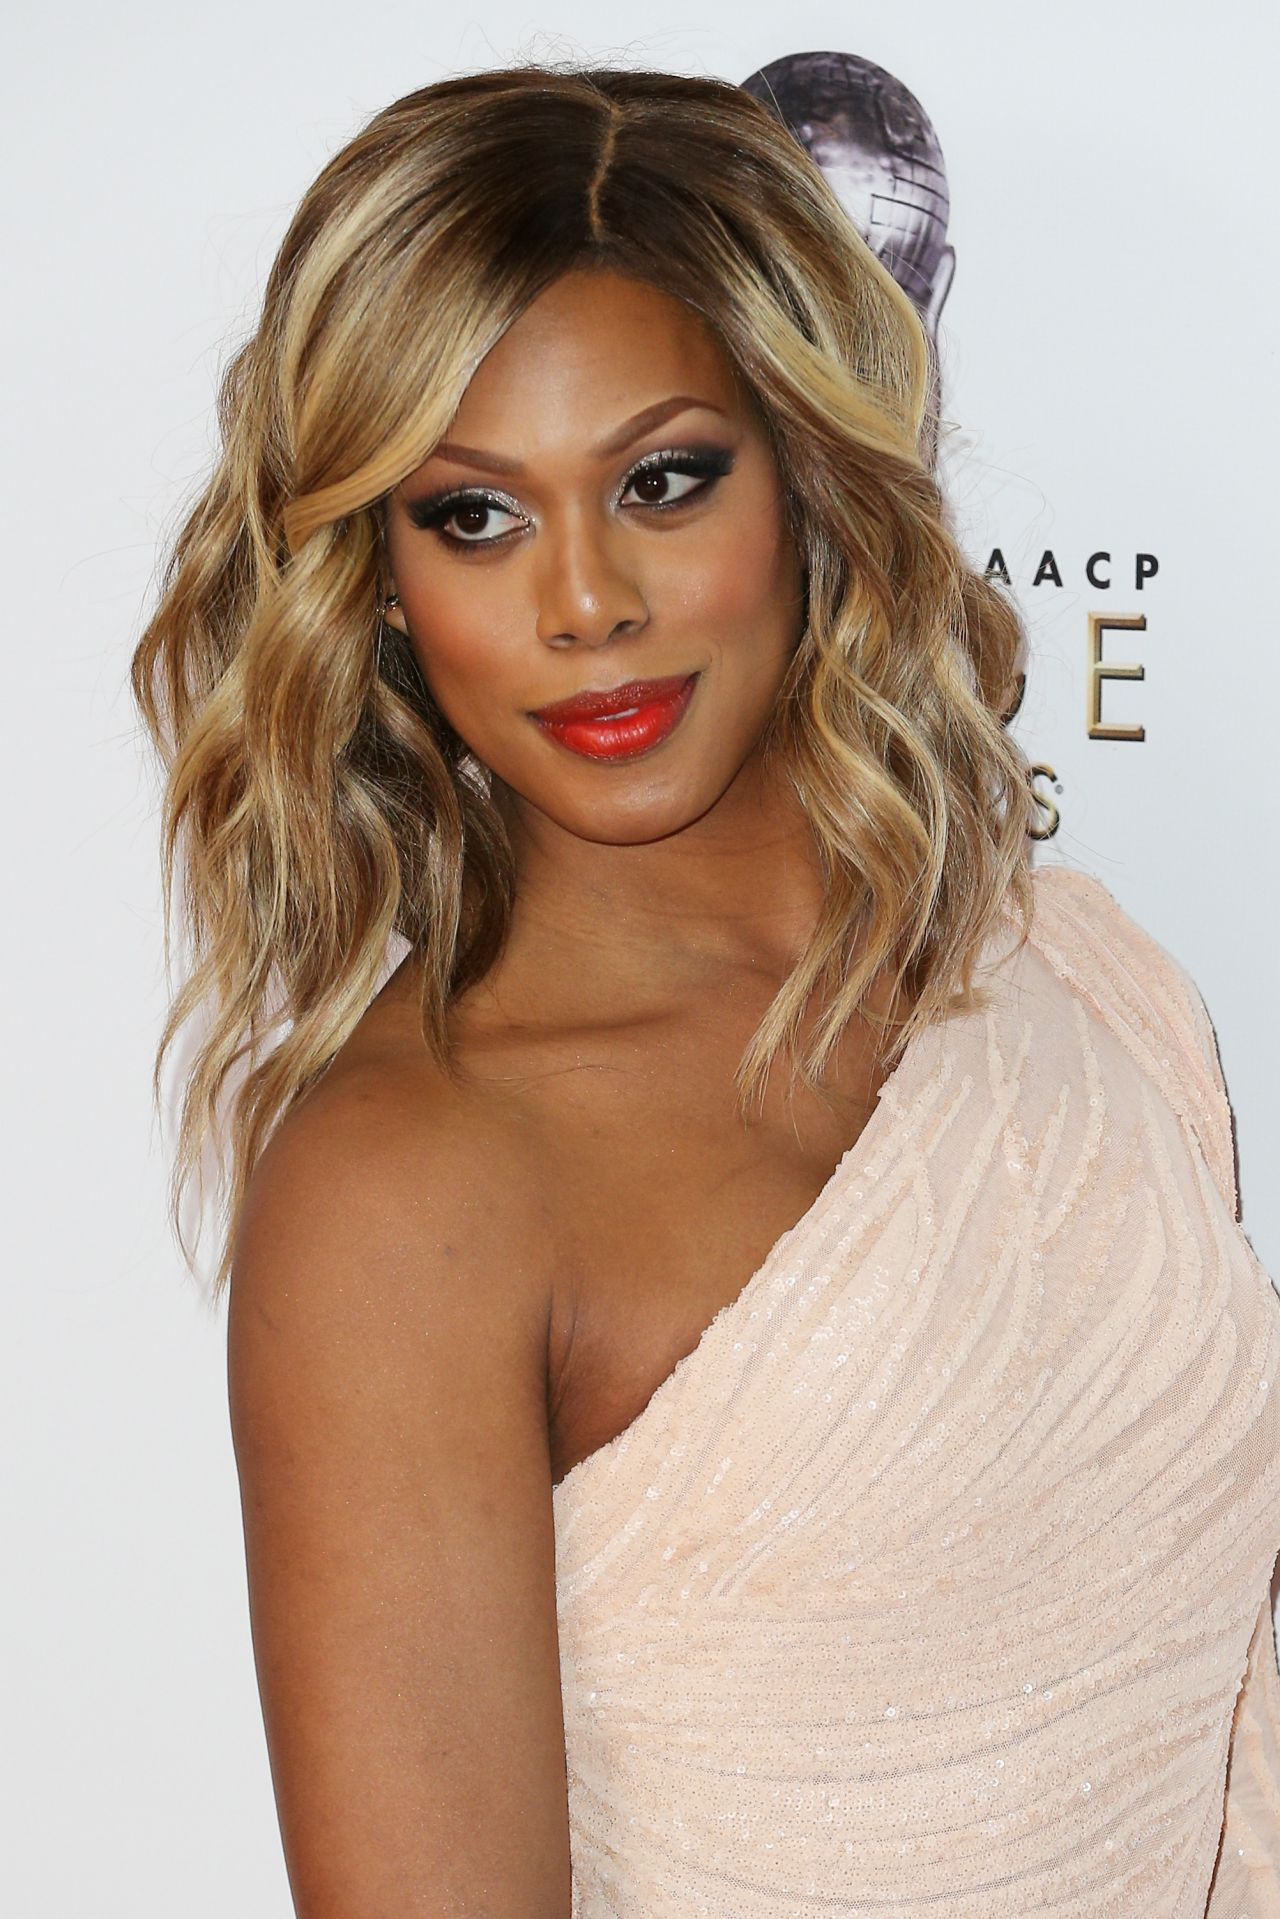 Laverne Cox Naacp Image Awards 2016 Presented By Tv One In Pasadena Ca